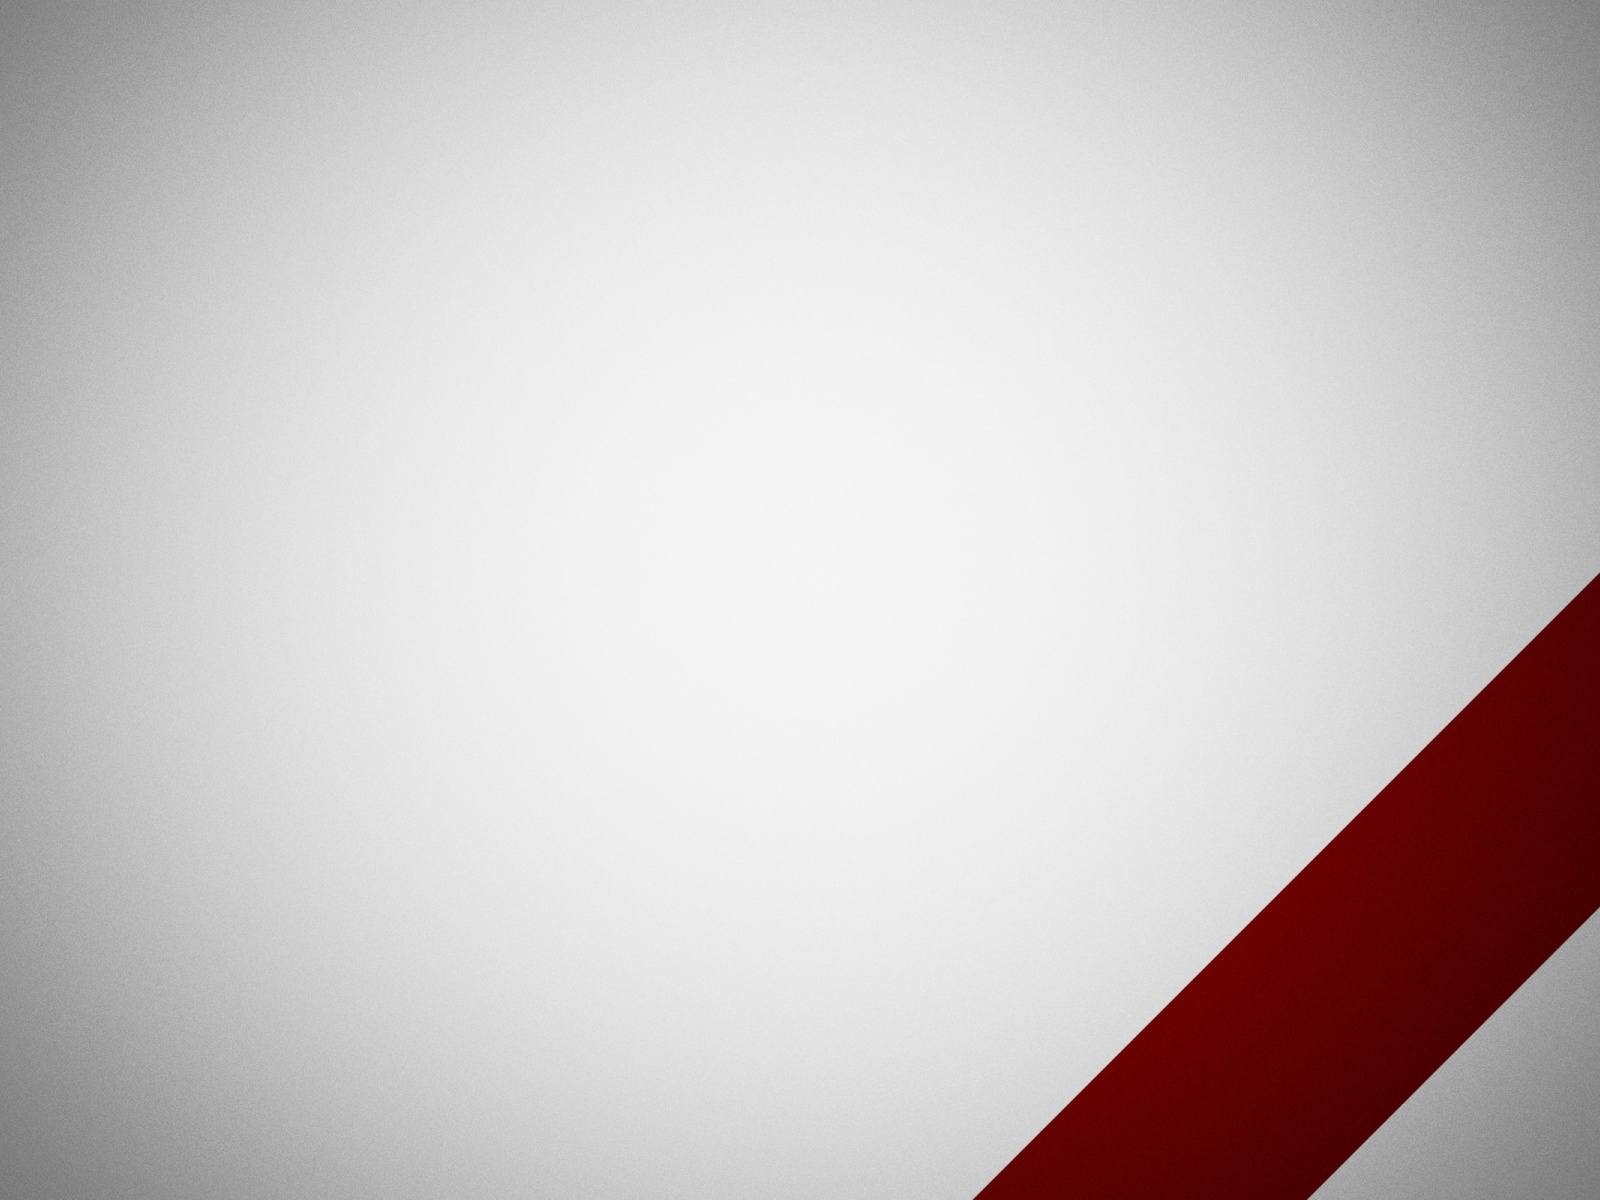 1600x1200 Red and White desktop PC and Mac wallpaper